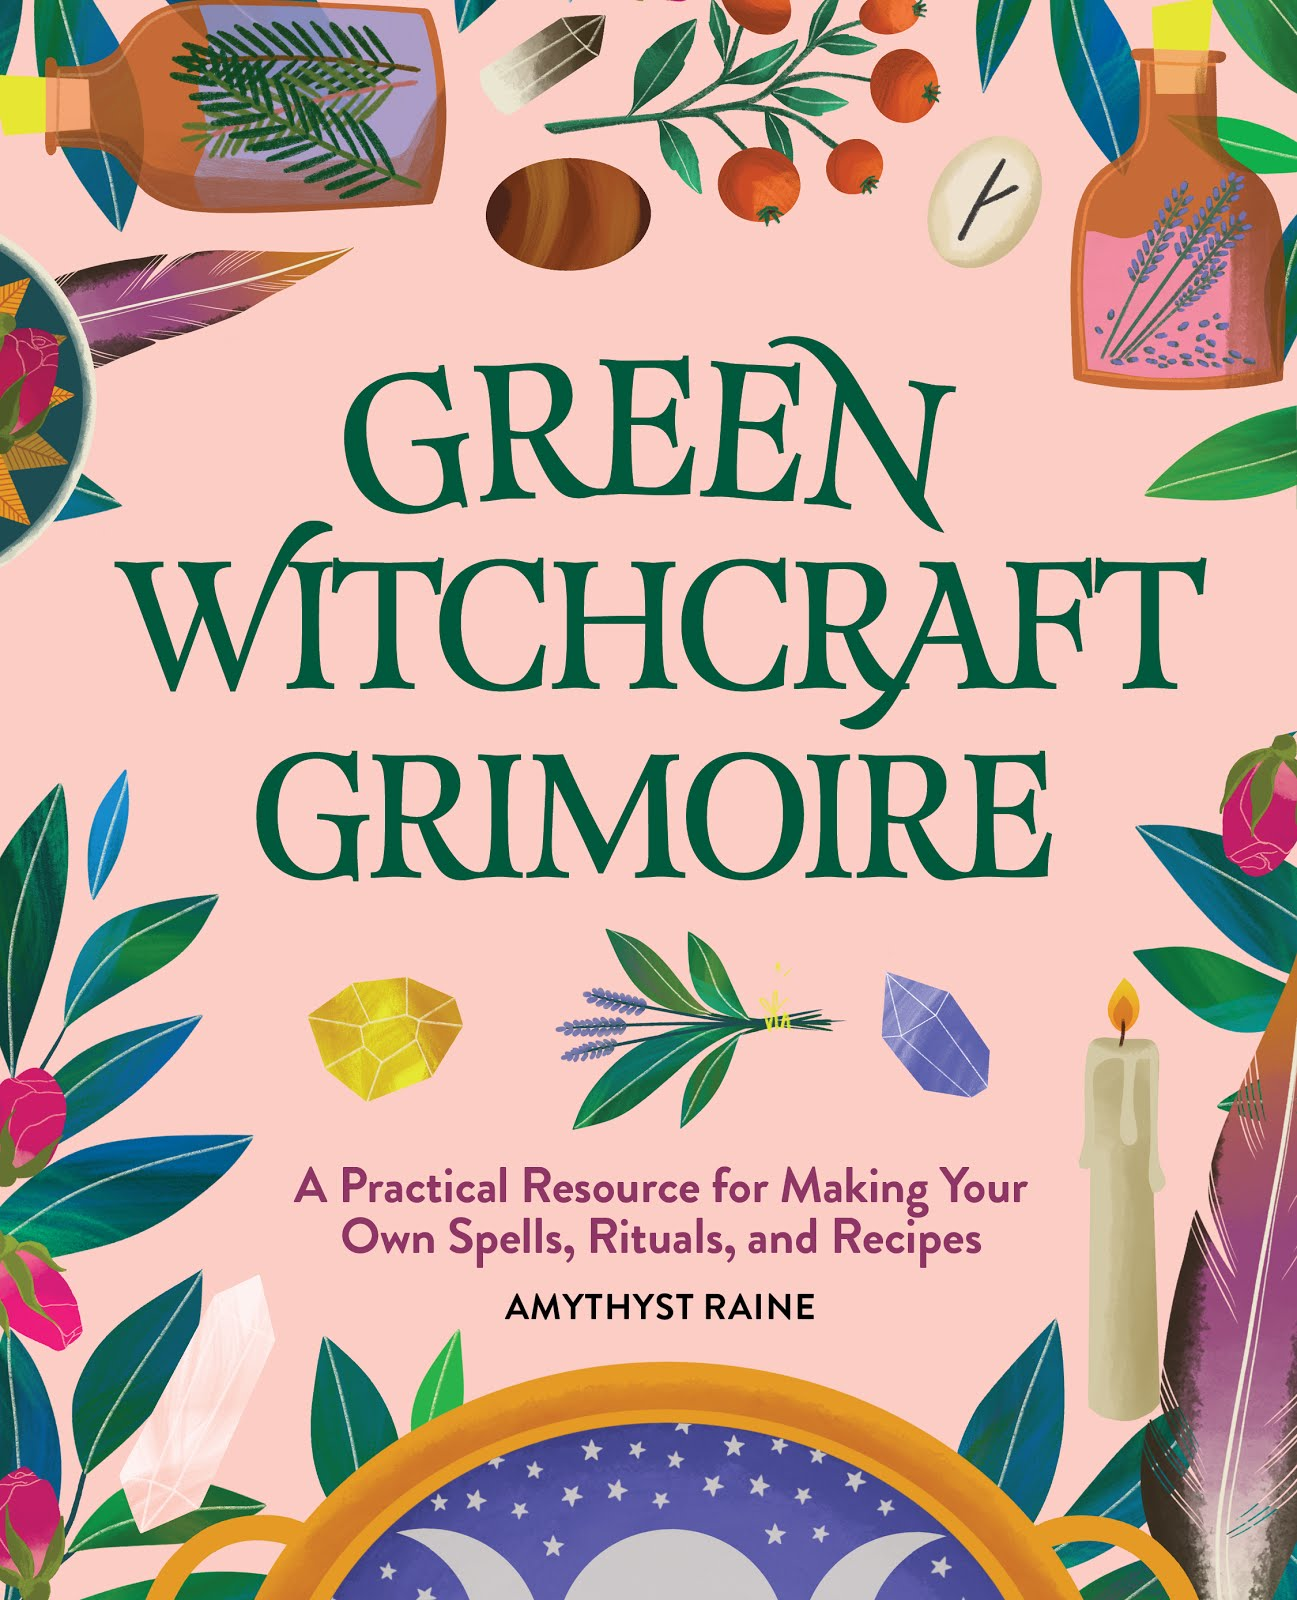 Green Witchcraft Grimoire